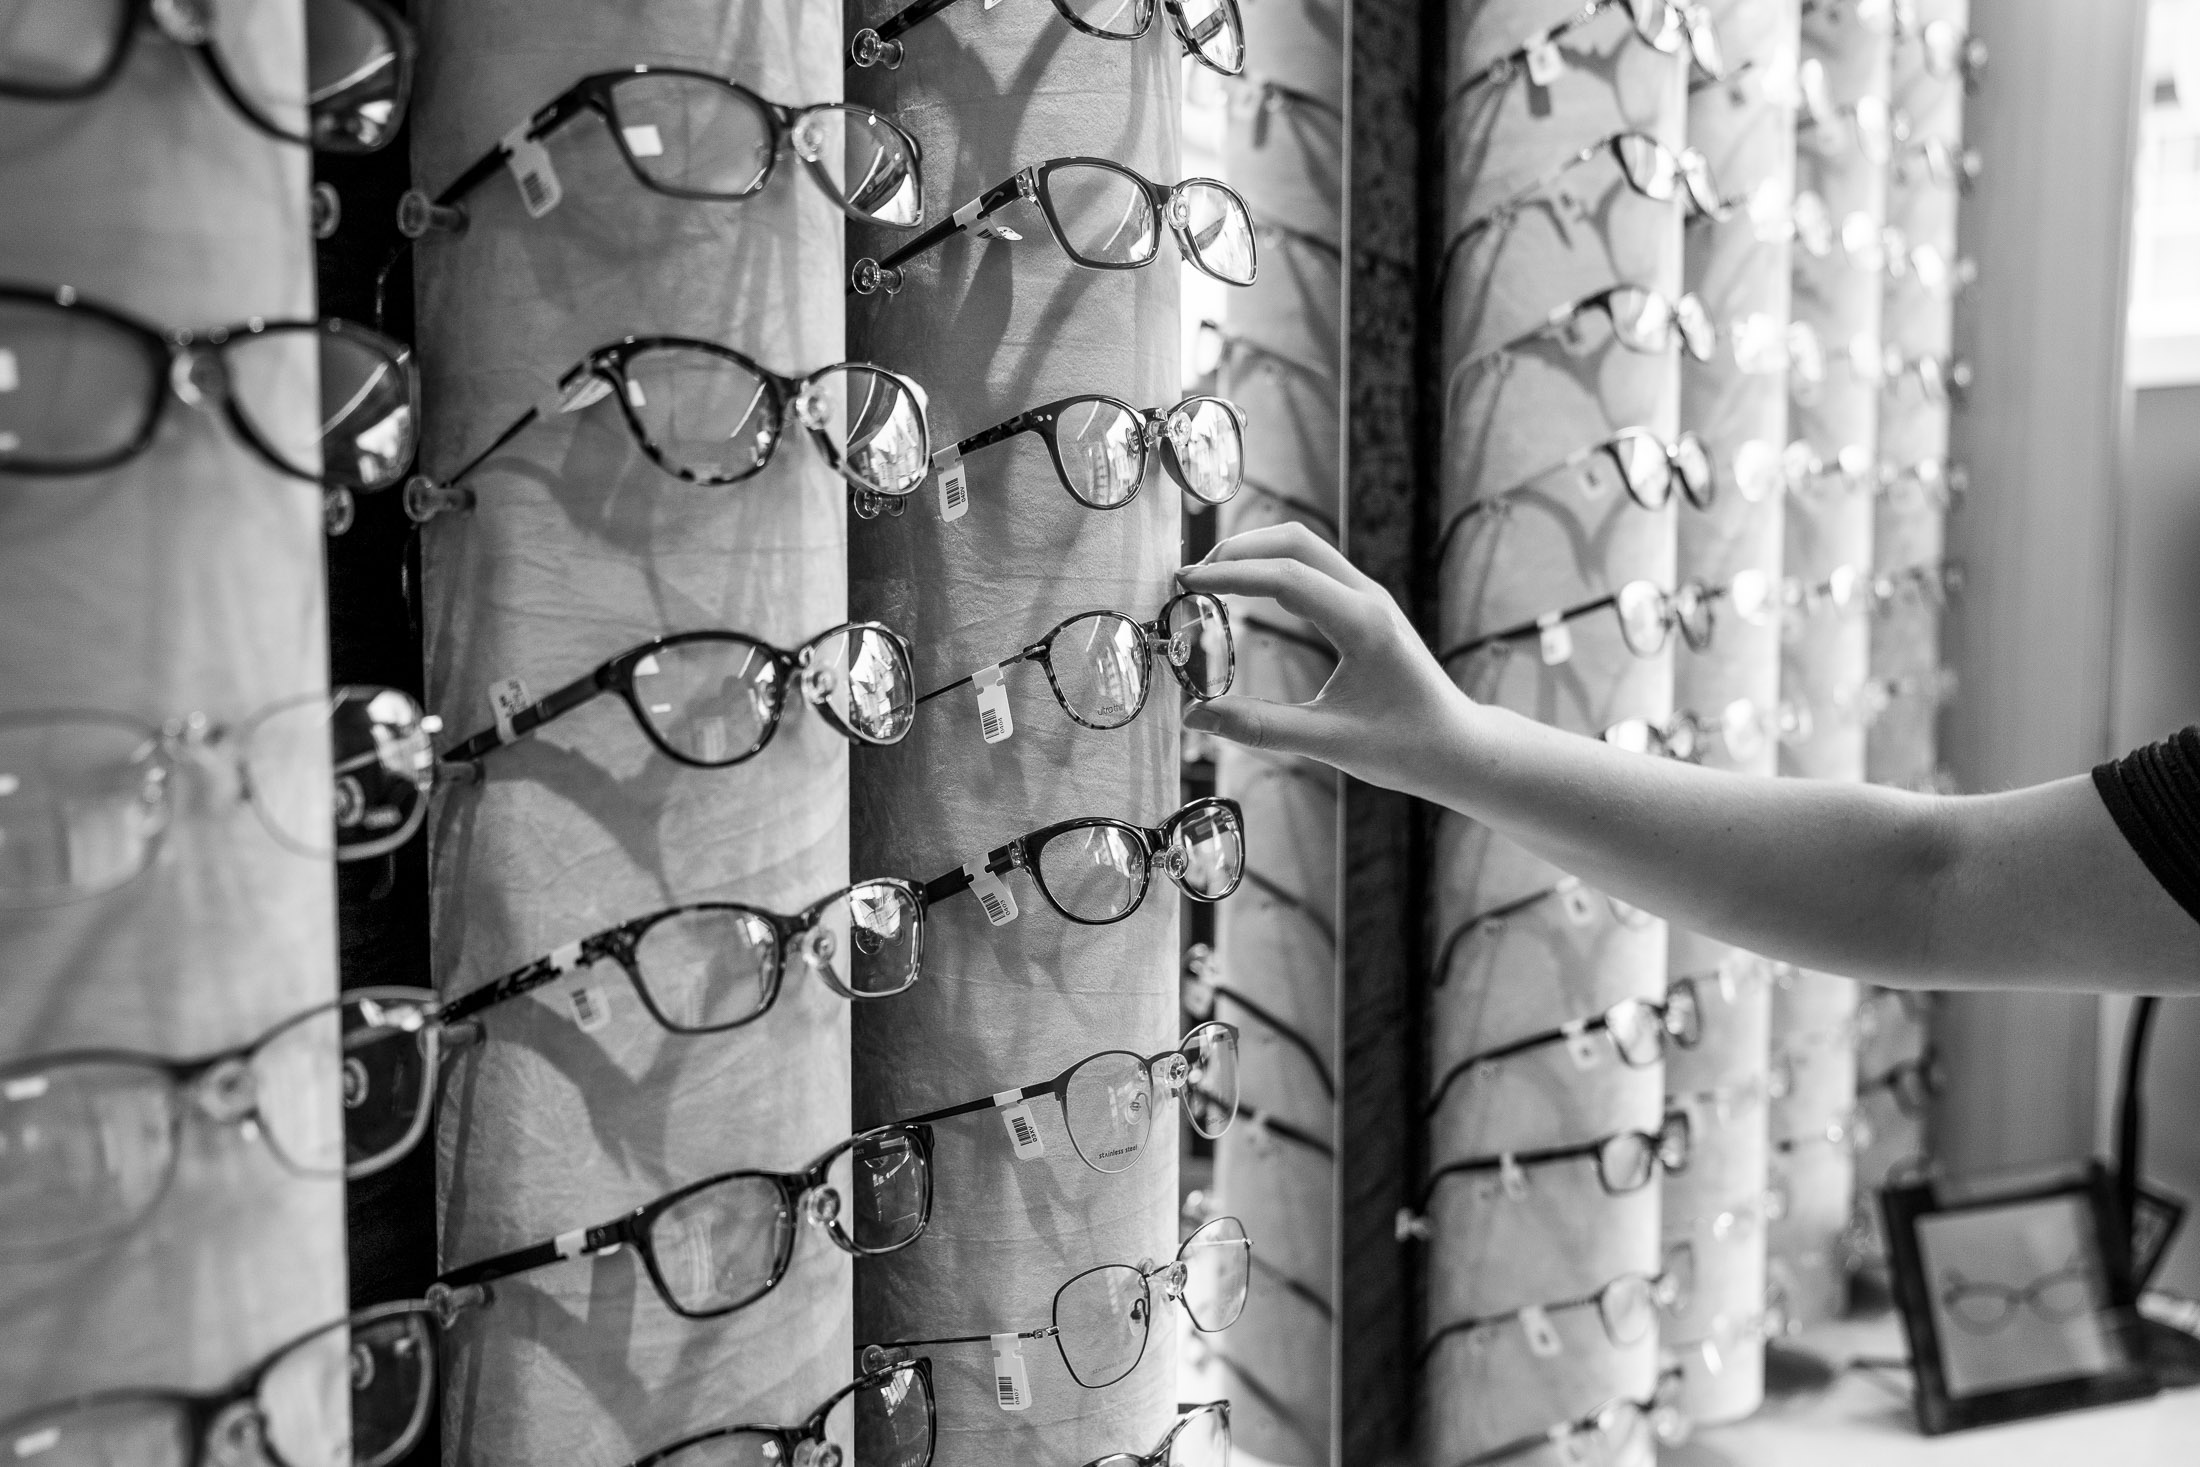 Commercial_photography_optometrist_glasses_wall.jpg